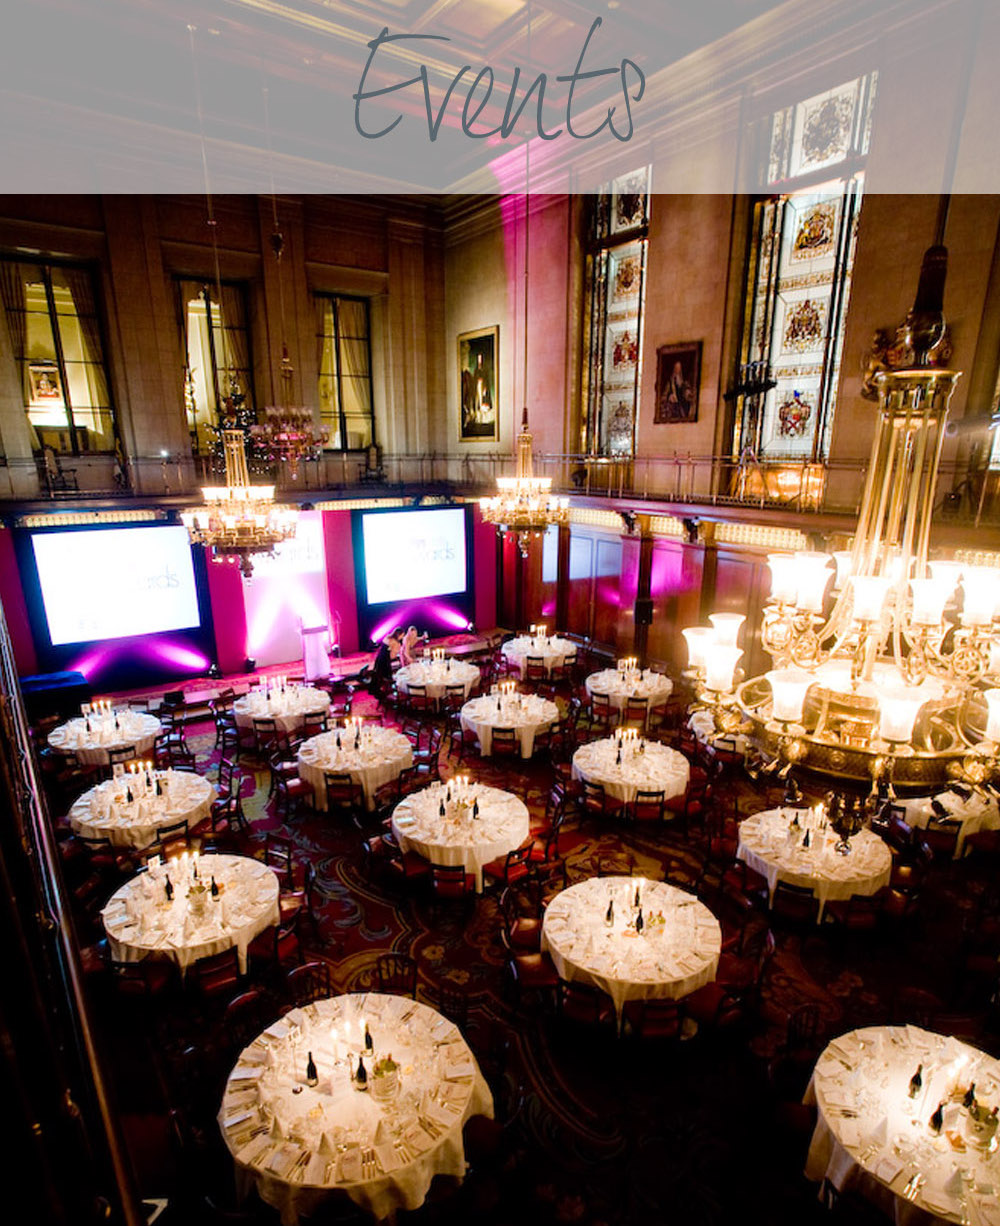 Our Corporate Event planning services can help you with press launches, client entertainment, awards ceremonies, festive celebrations and more.